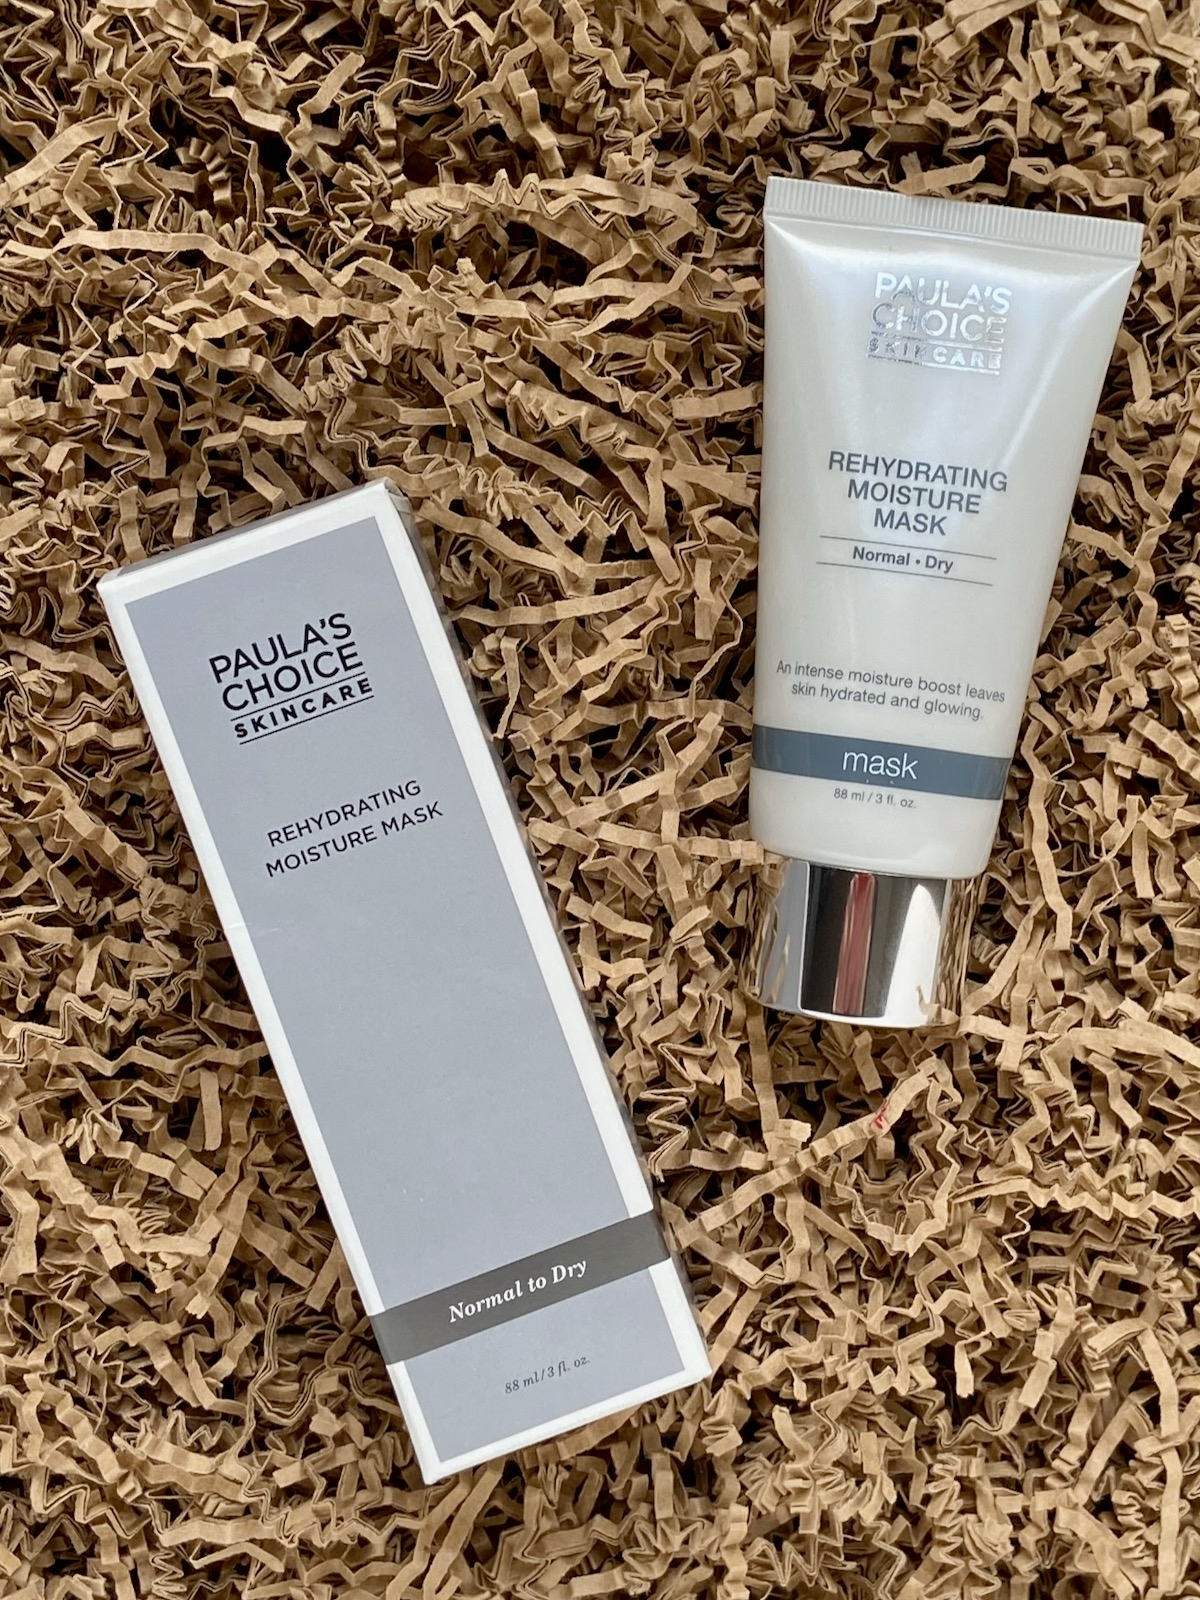 Paula's Choice Rehydrating Moisture Mask